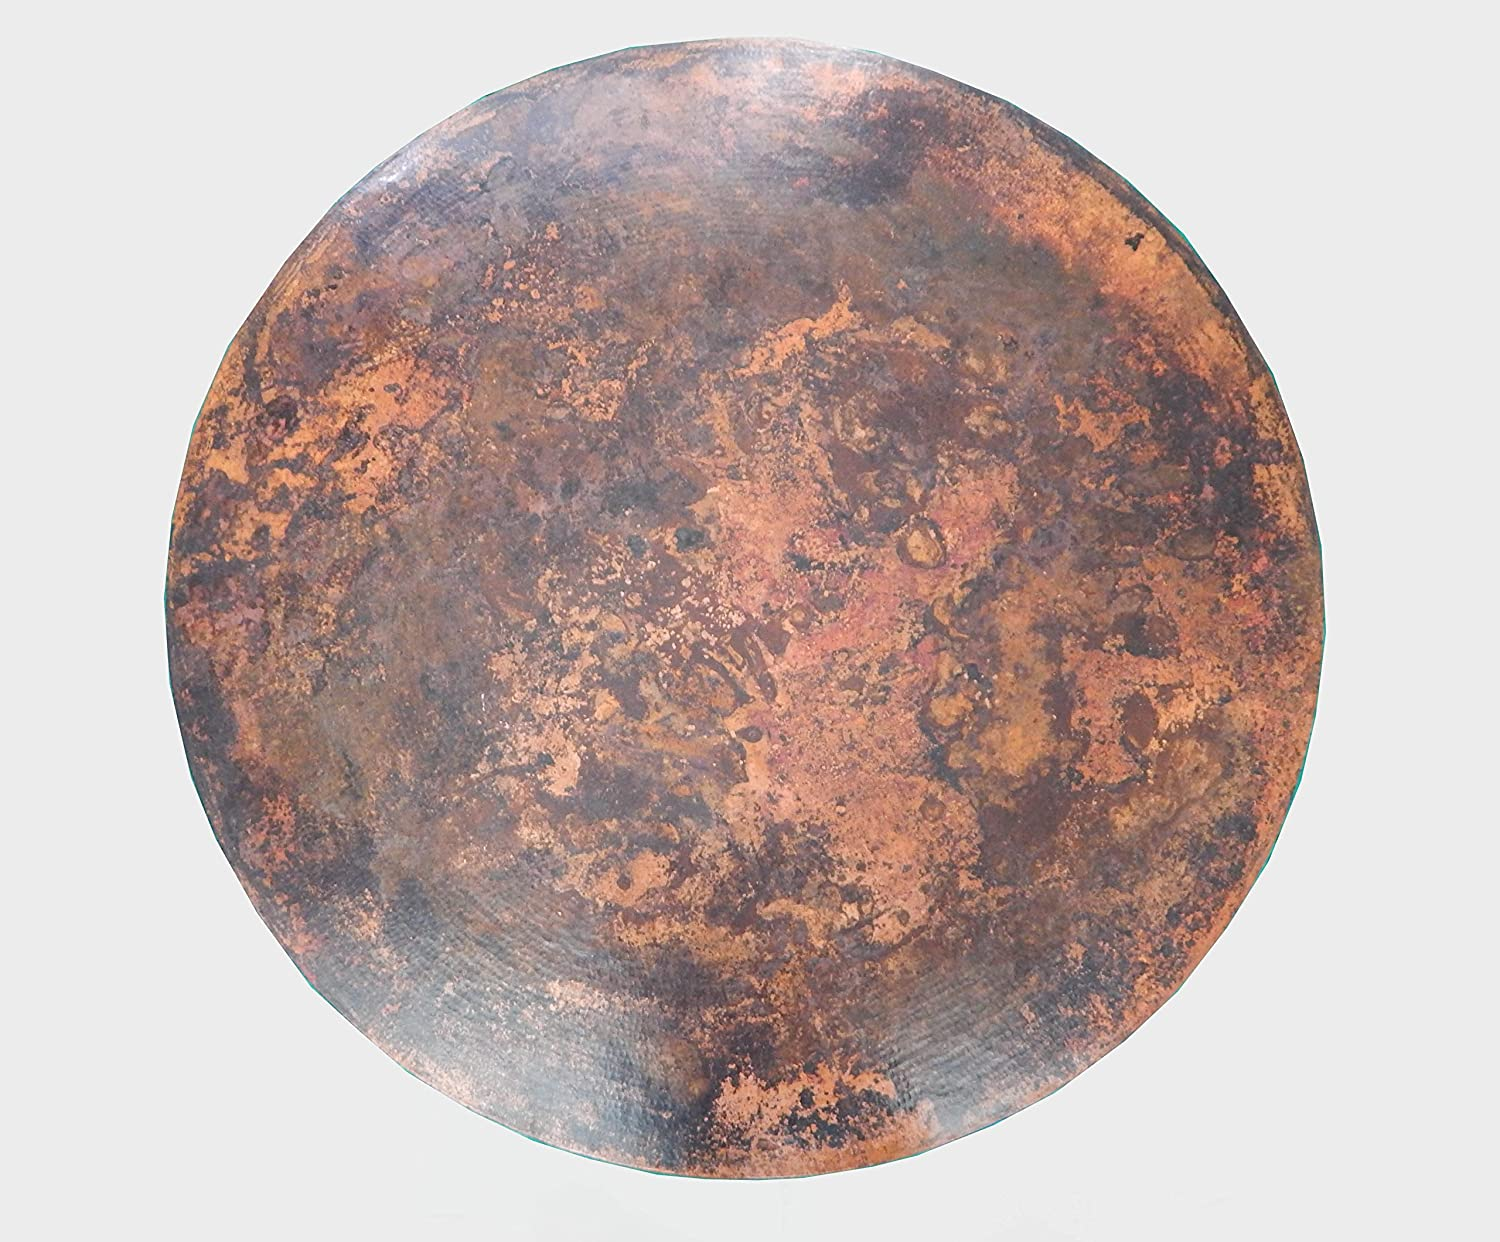 COLOR Y TRADICI N Mexican Round Copper Table Top Hand Hammered Stained Patina 48